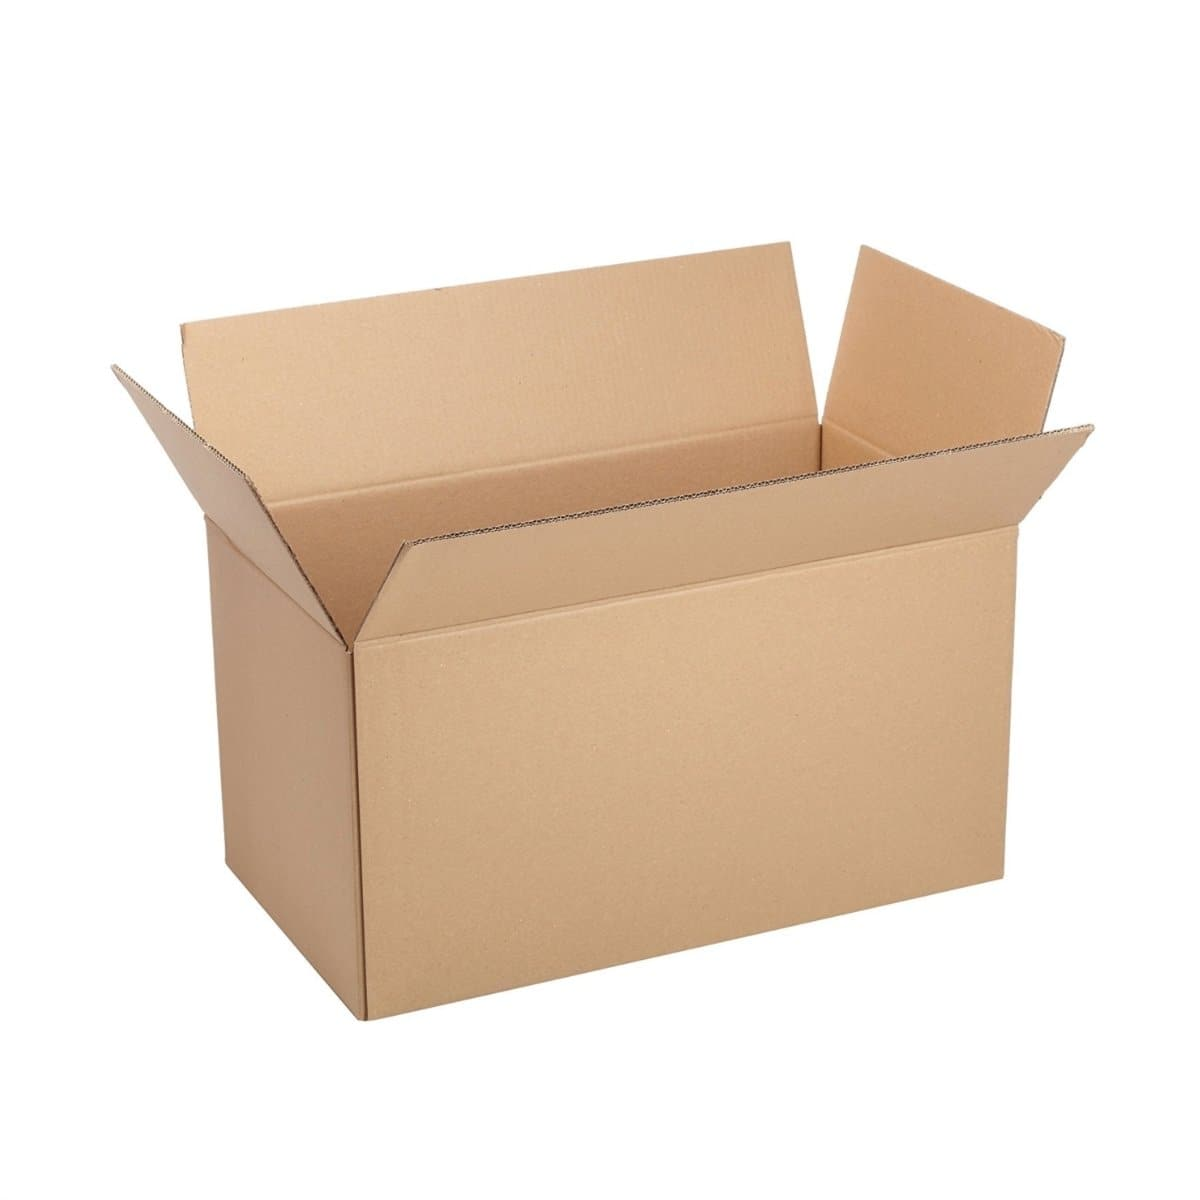 Corrugated Cardboard Storage Box, 100x74xH74cm